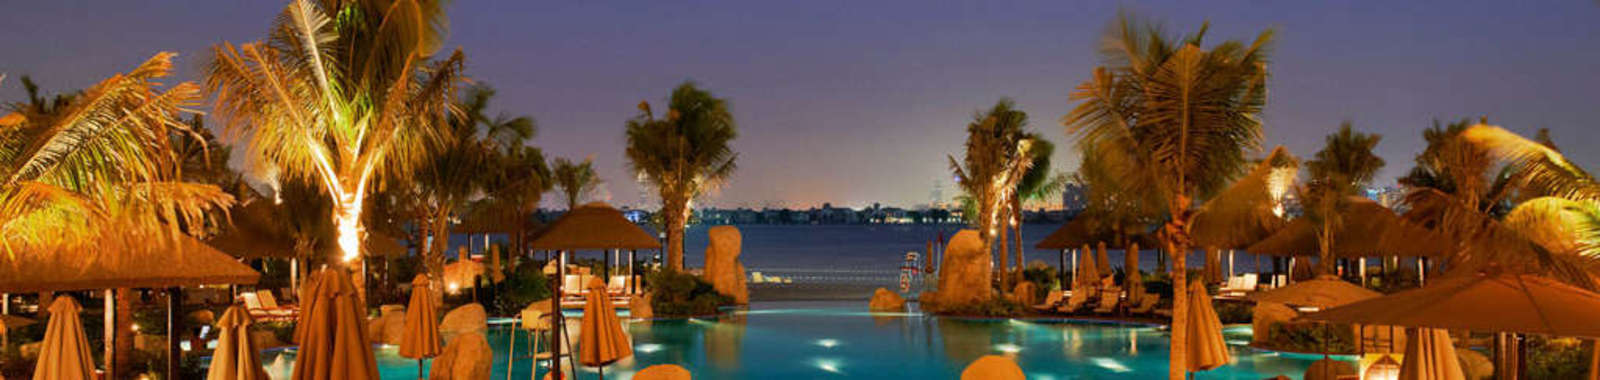 5 Sofitel The Palm Dubai